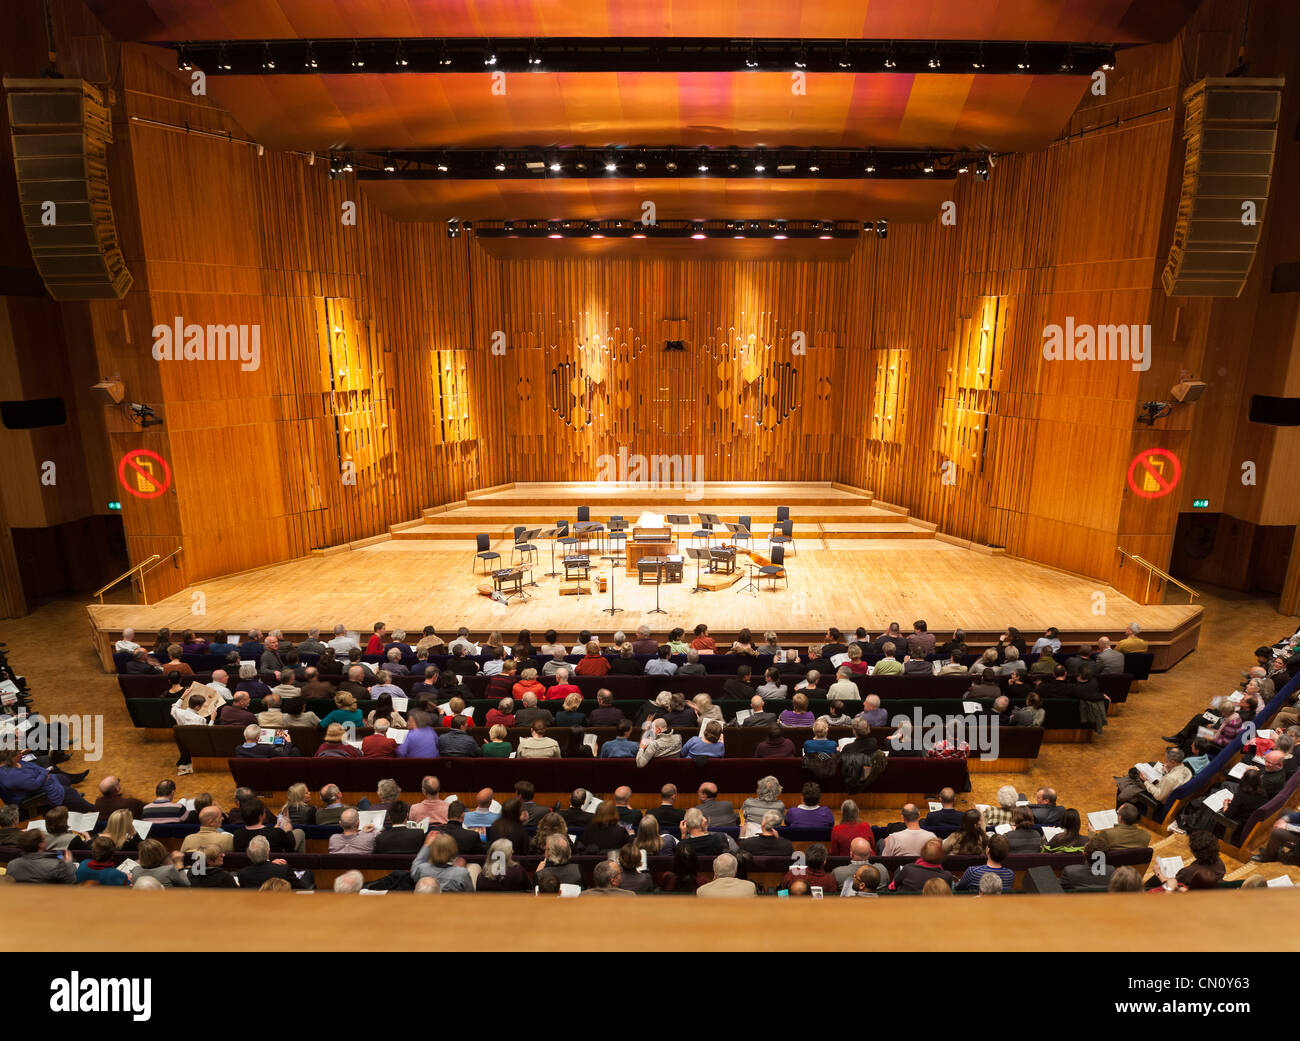 Empty music stage of the Barbican Centre Concert Hall Theatre Theater Auditorium London. With audience public visitors - Stock Image